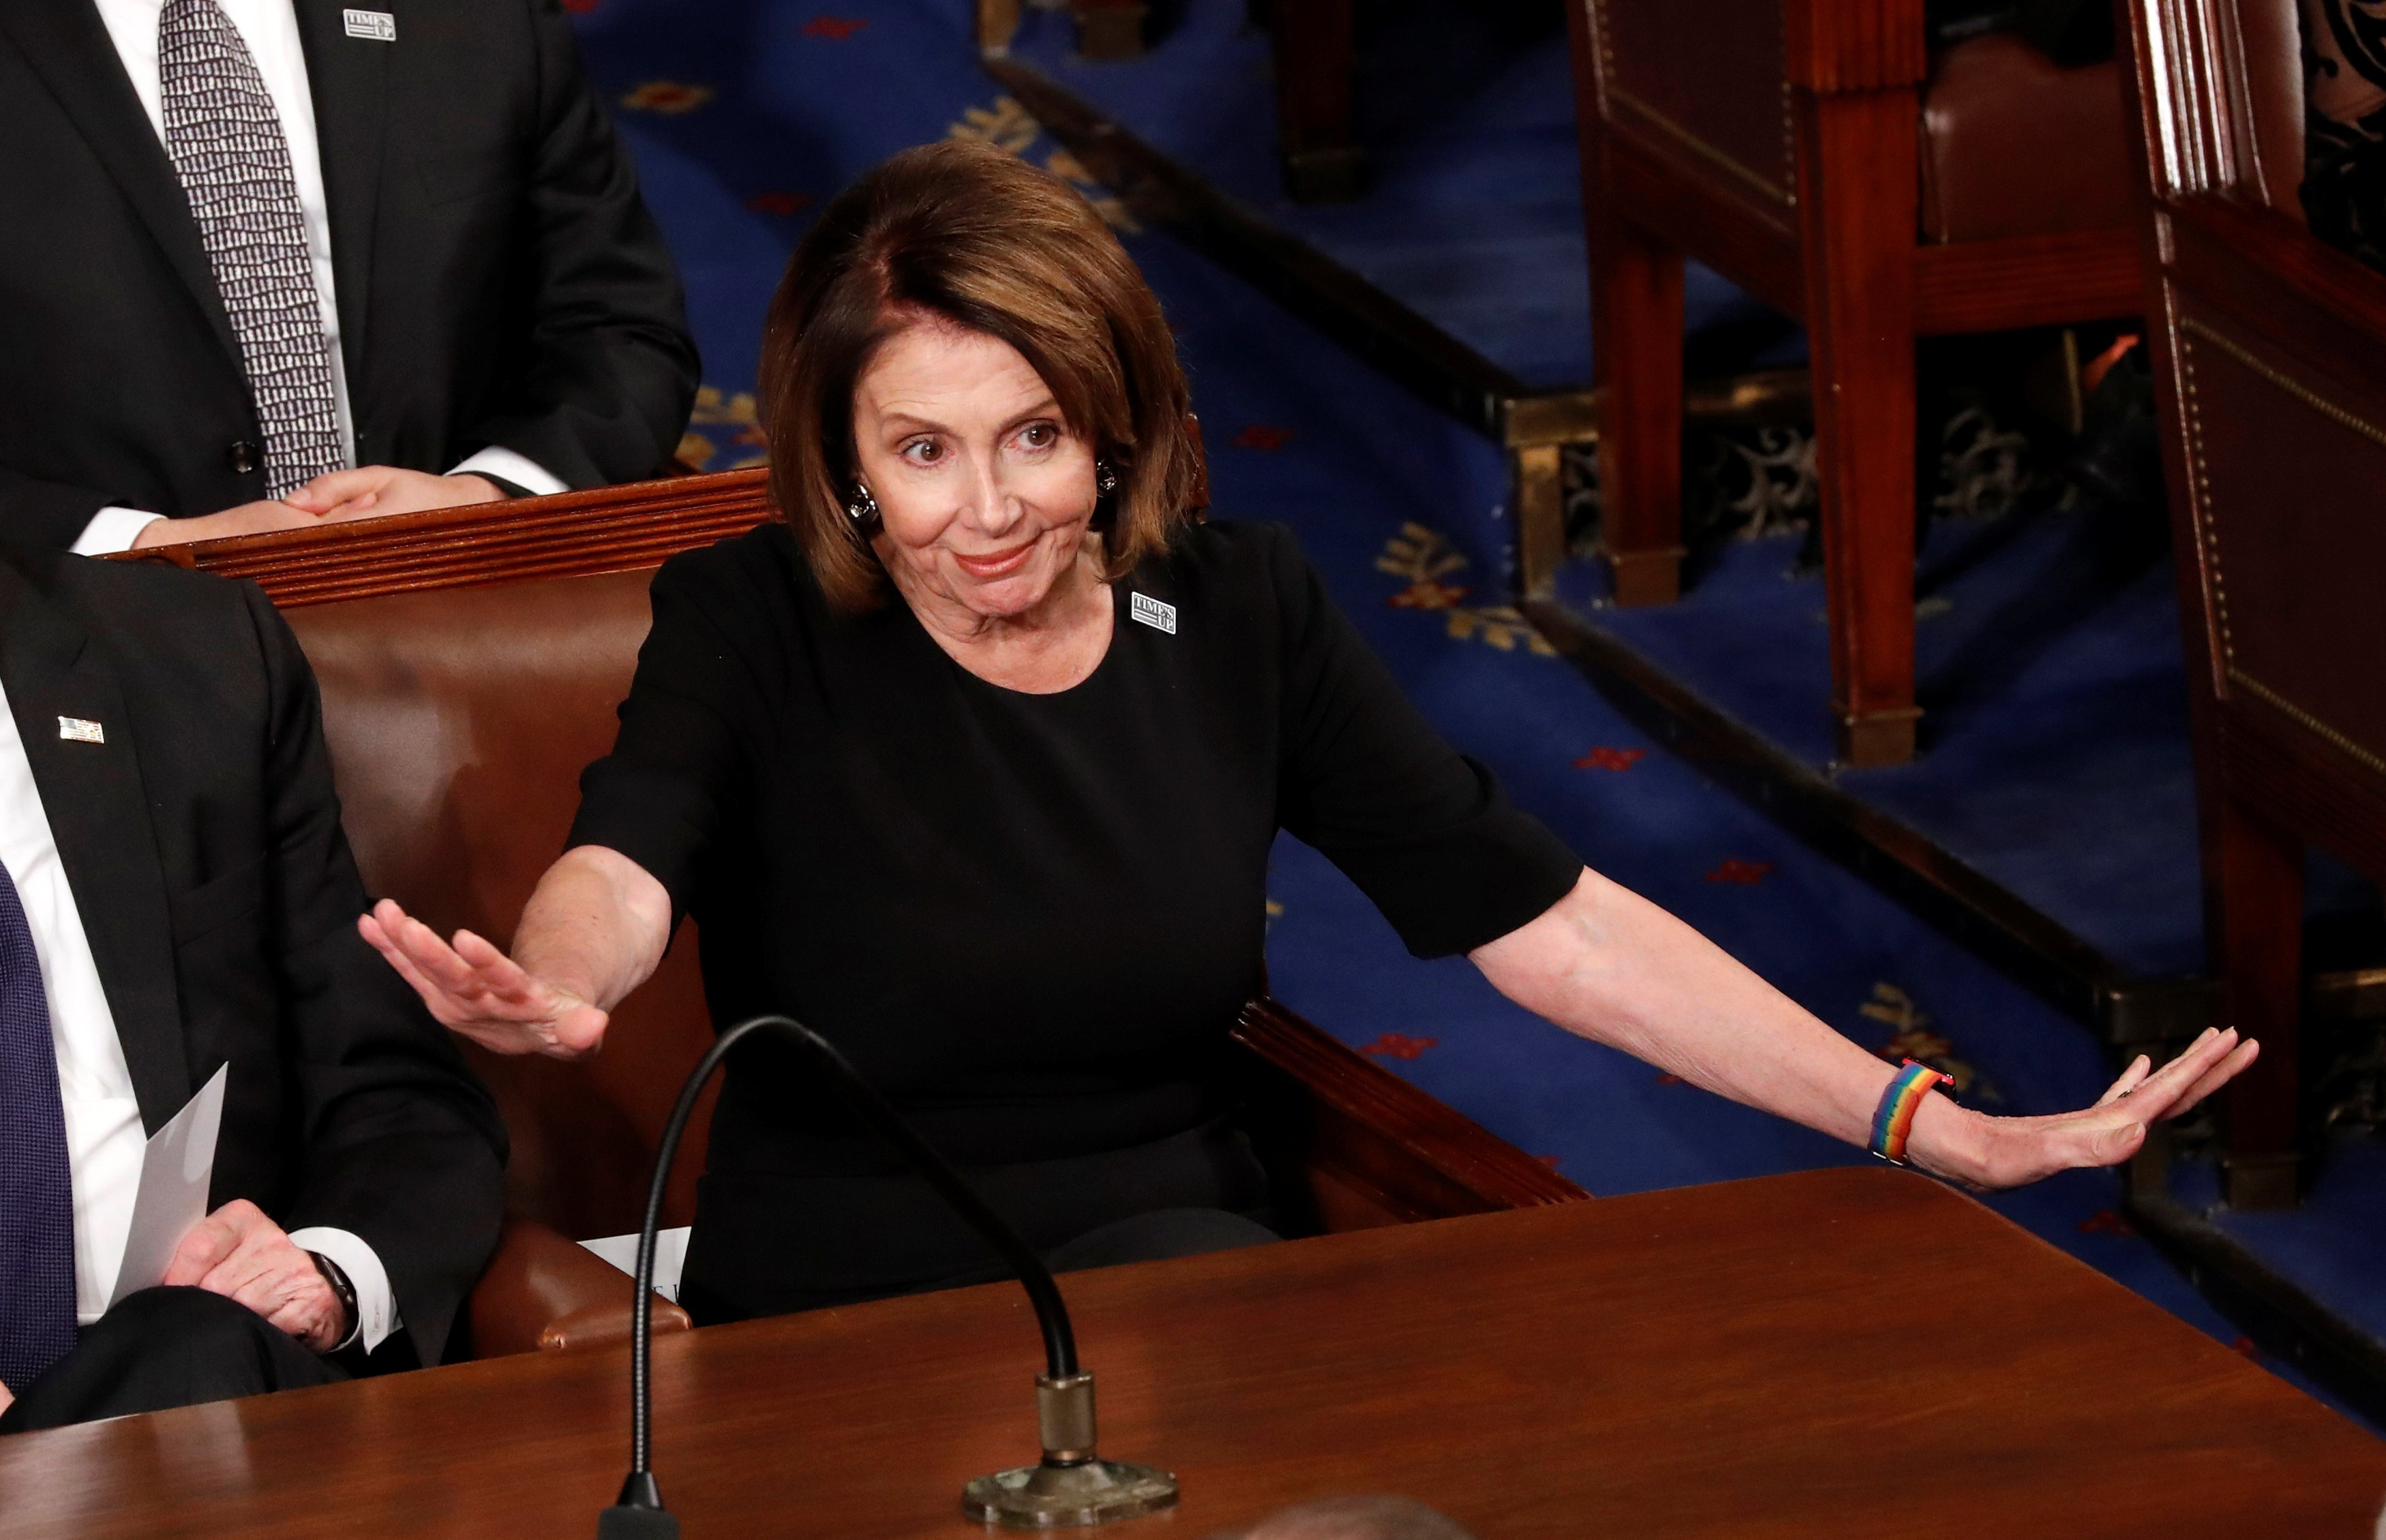 House Minority Leader Pelosi reacts as U.S. President Trump delivers his State of the Union address in Washington